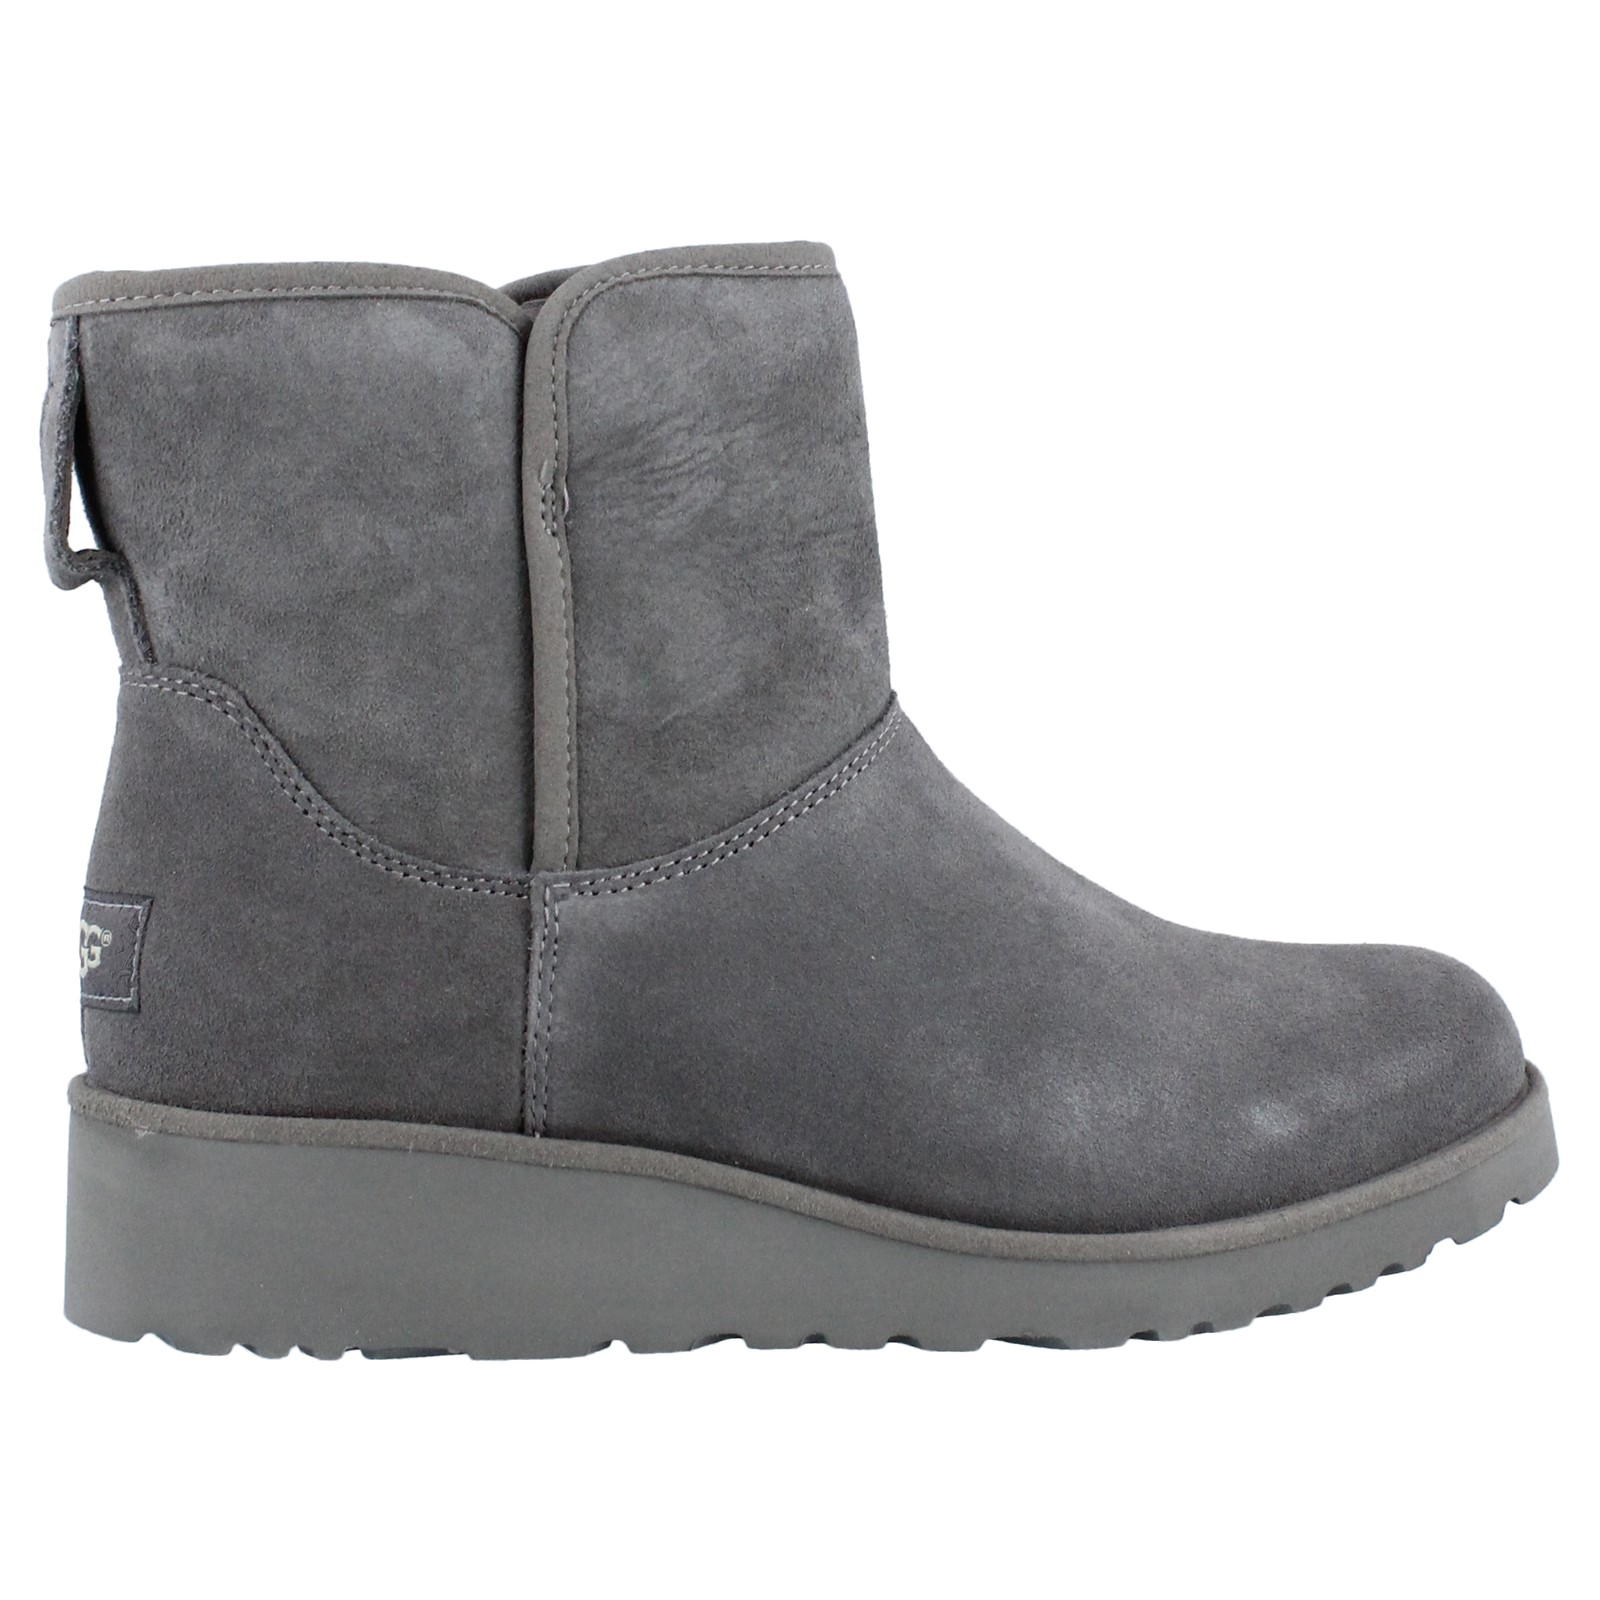 Women's Ugg, Kristin Ankle Boot